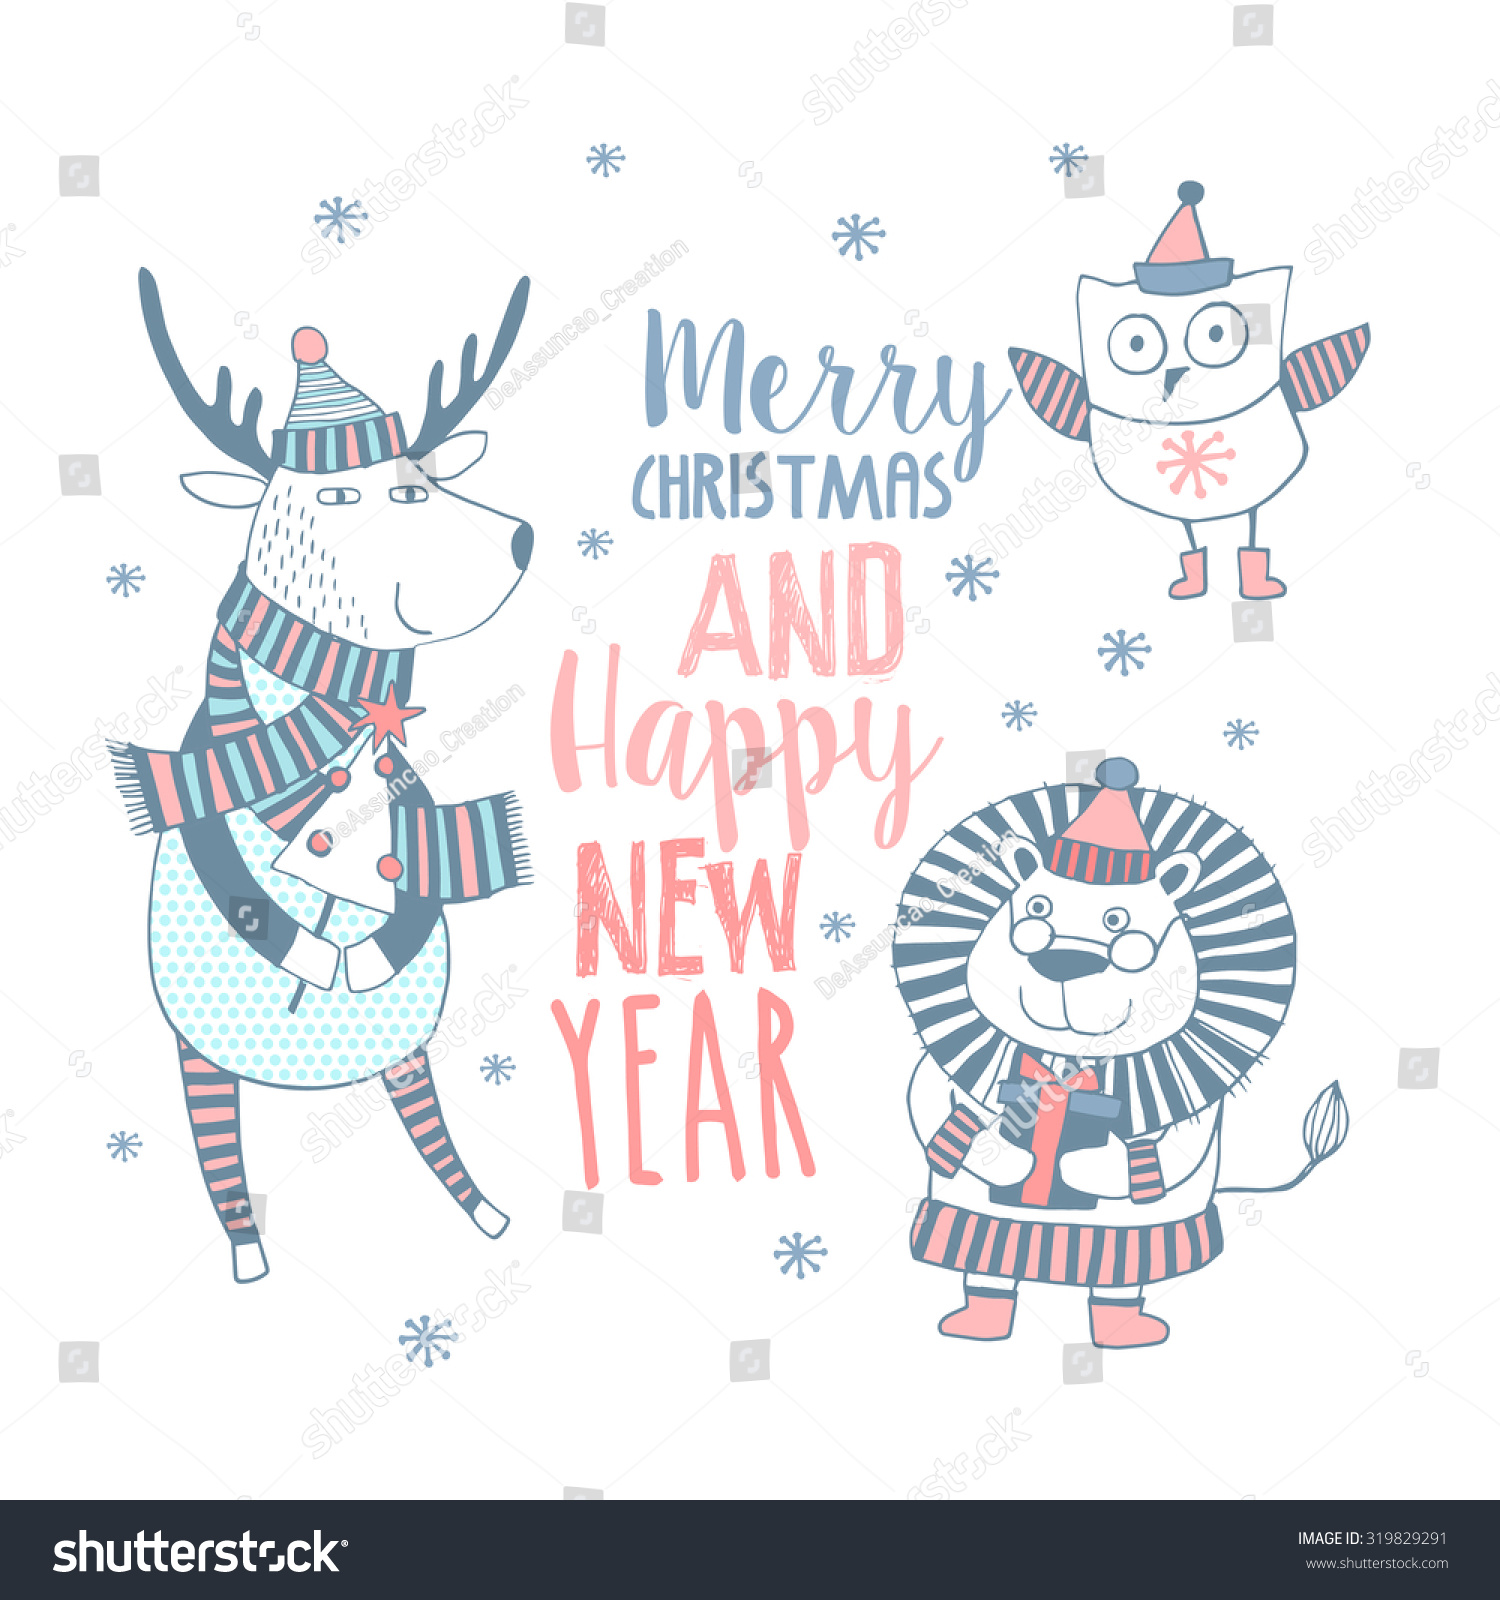 cute merry christmas happy new year card with animals lovely cartoon background with holiday symbols